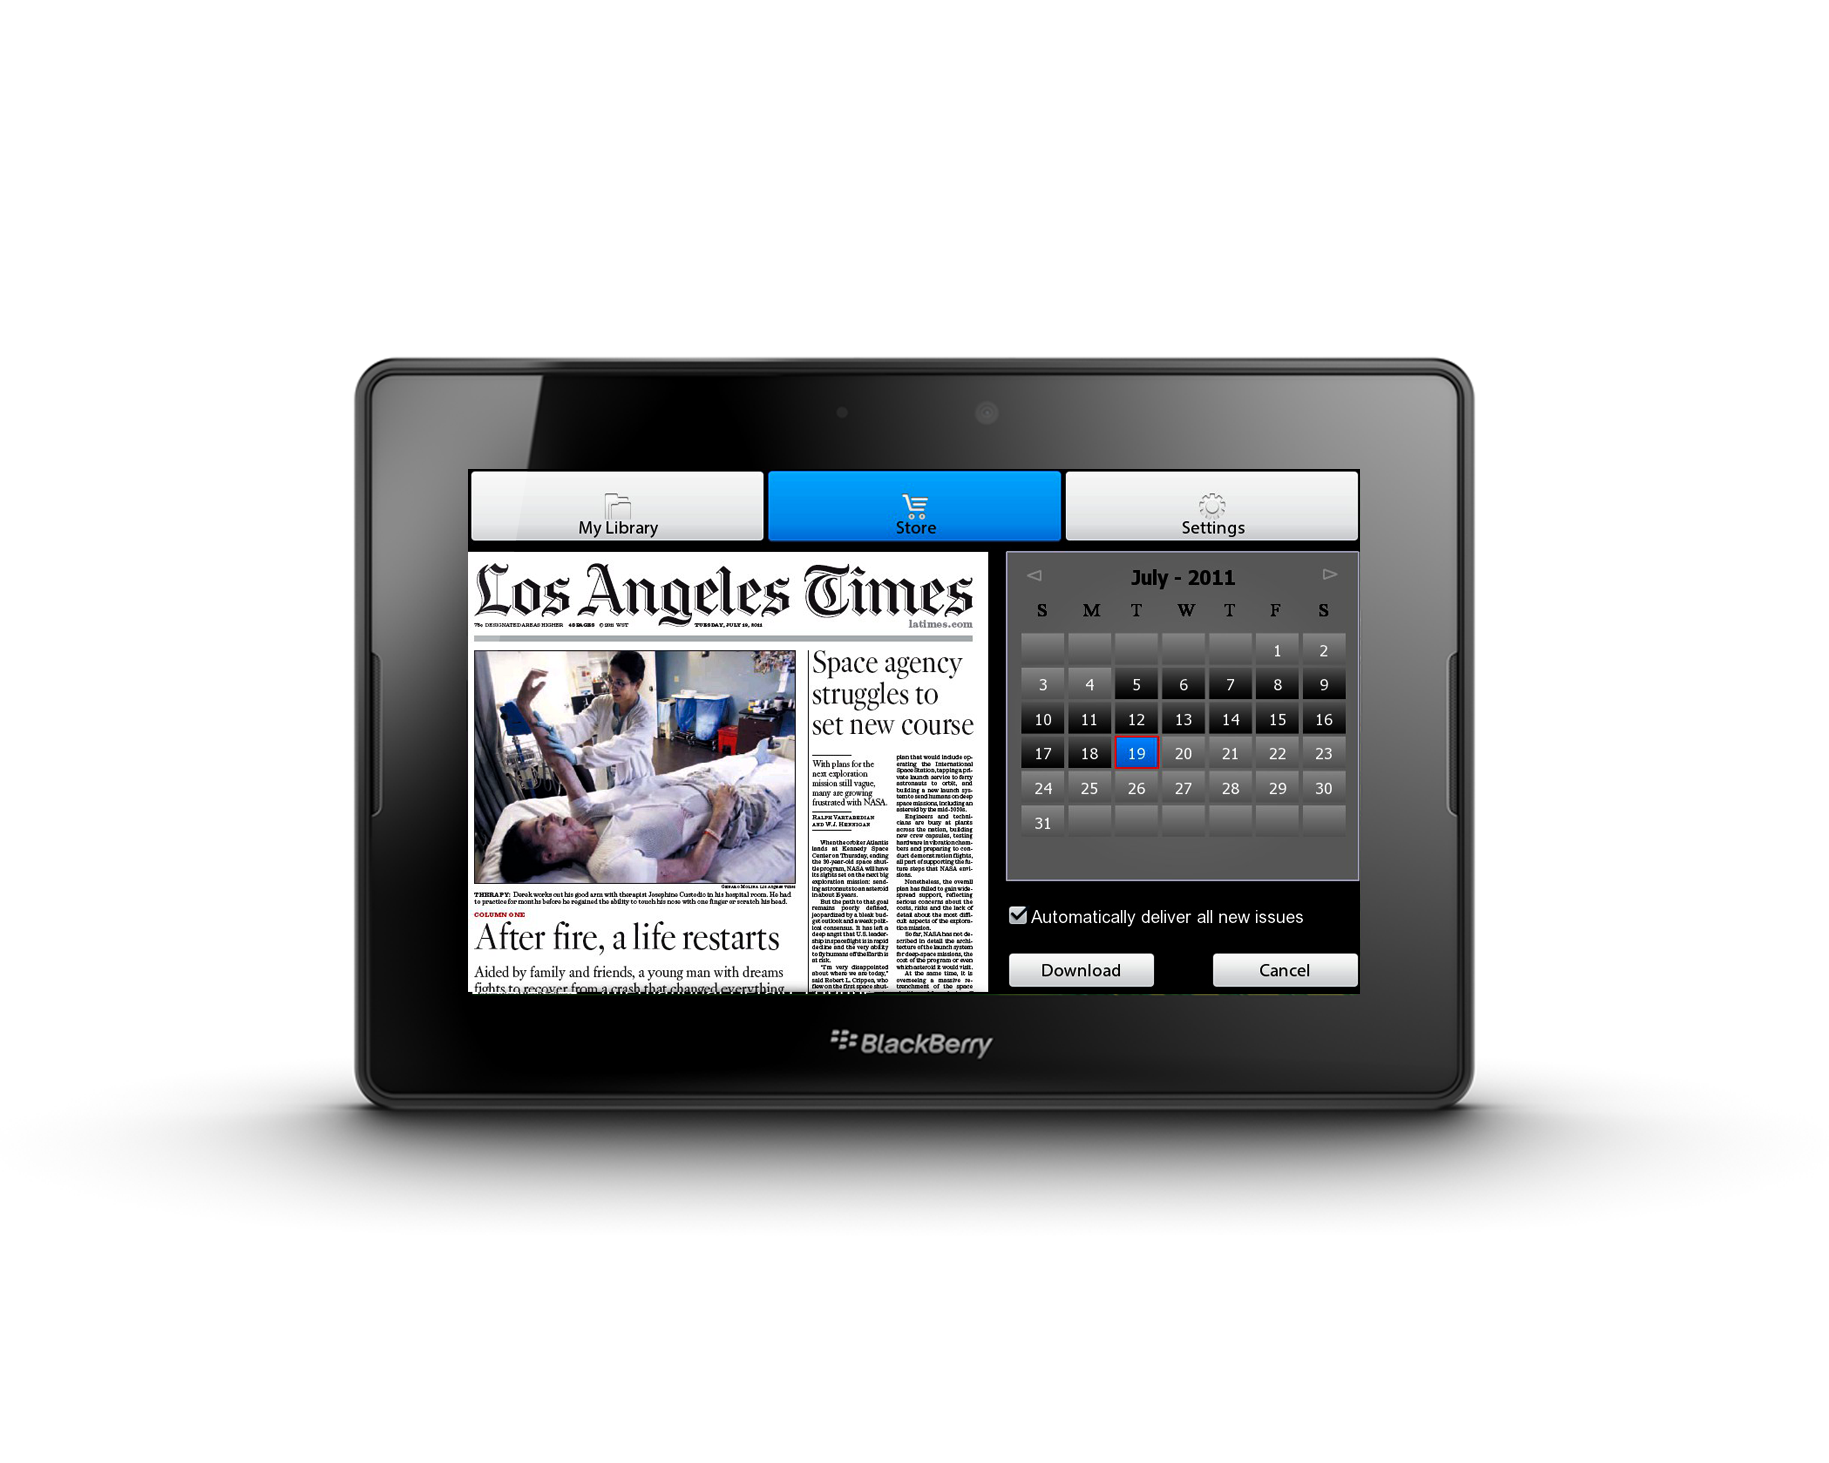 PressReader gives BlackBerry PlayBook users instant access to the largest selection of top news publications from around the world.